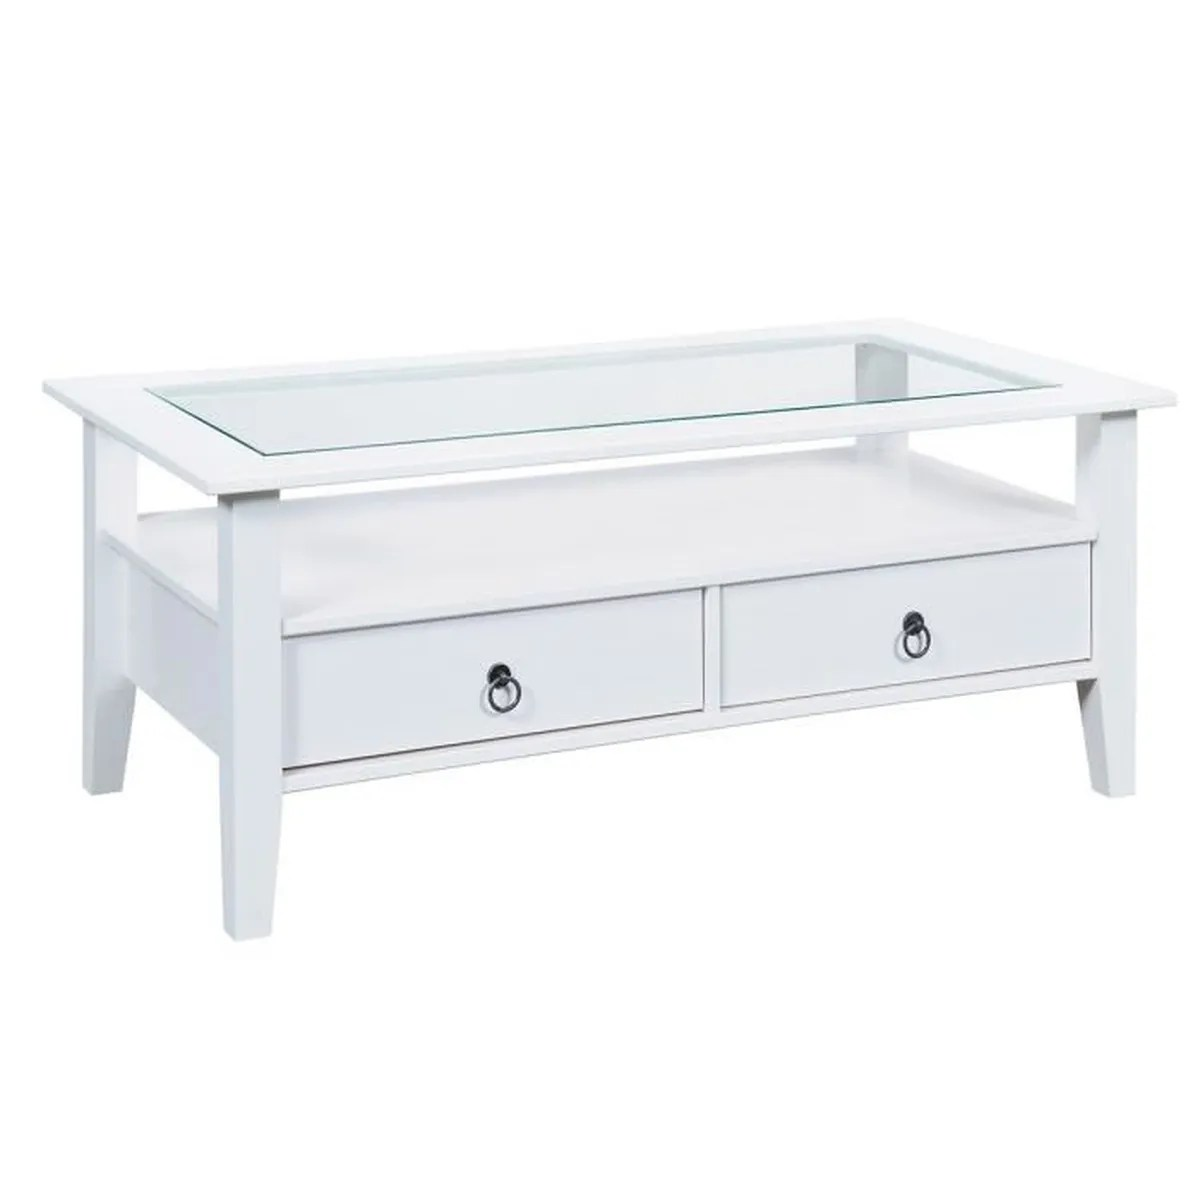 Table Basse Bois Blanc Natur Table Basse Rectangulaire Blanc Achat Vente